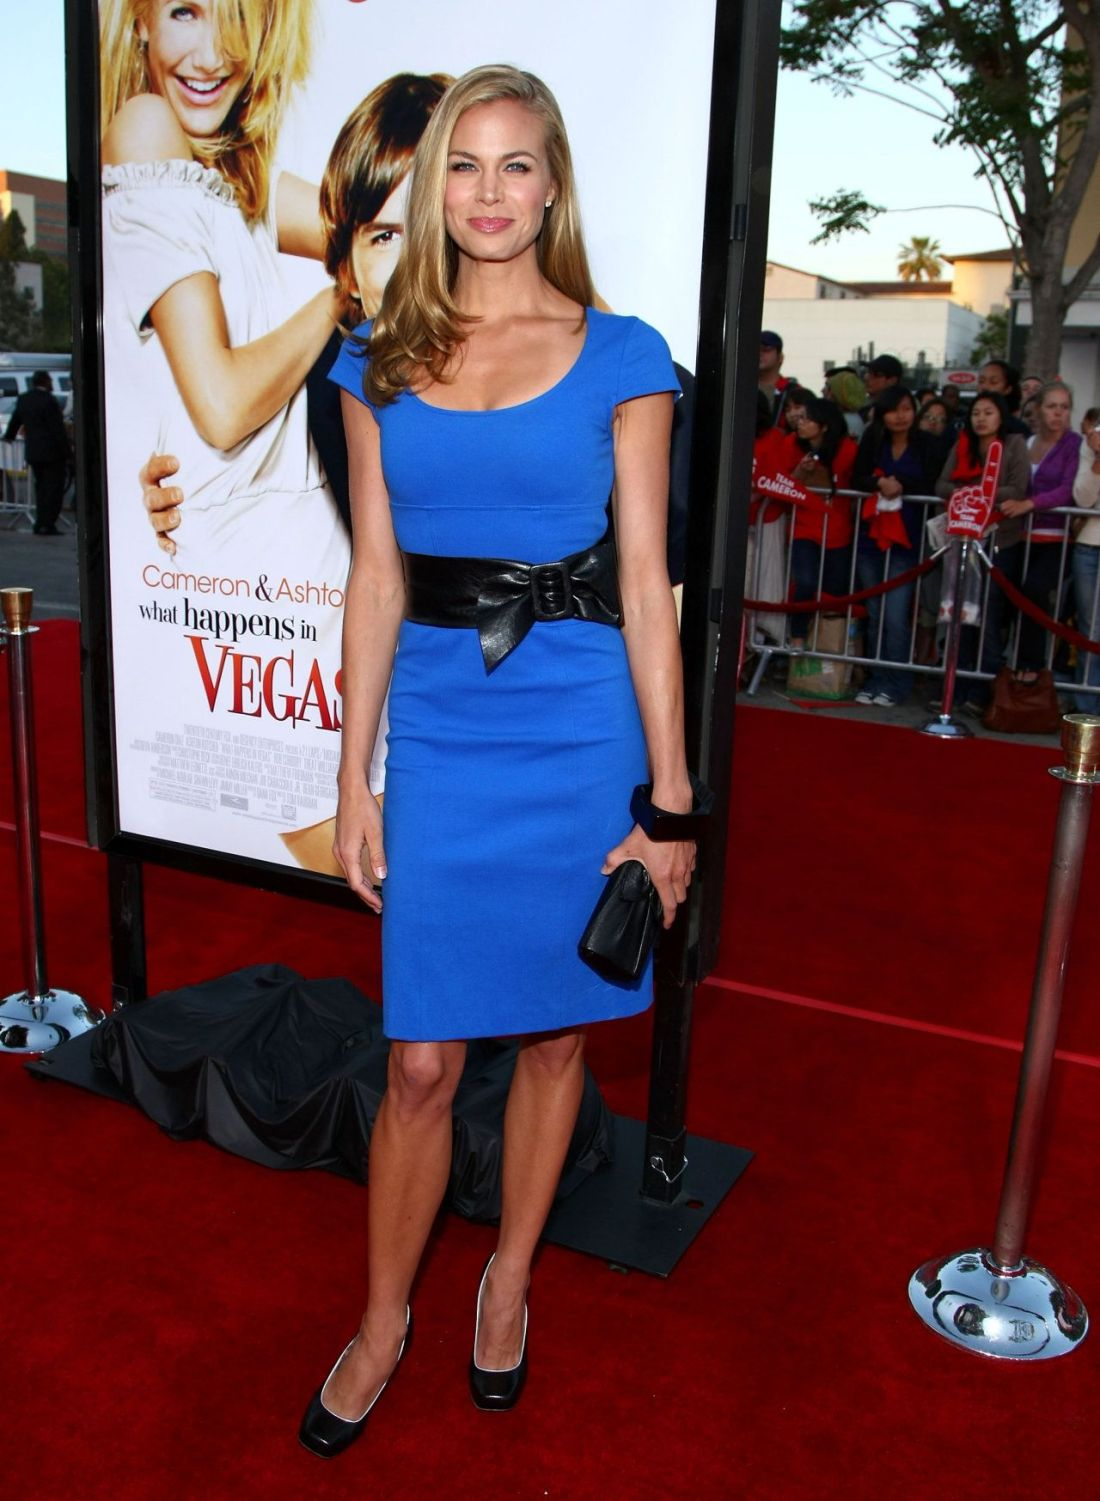 Brooke burns cleavage images graphics comments and